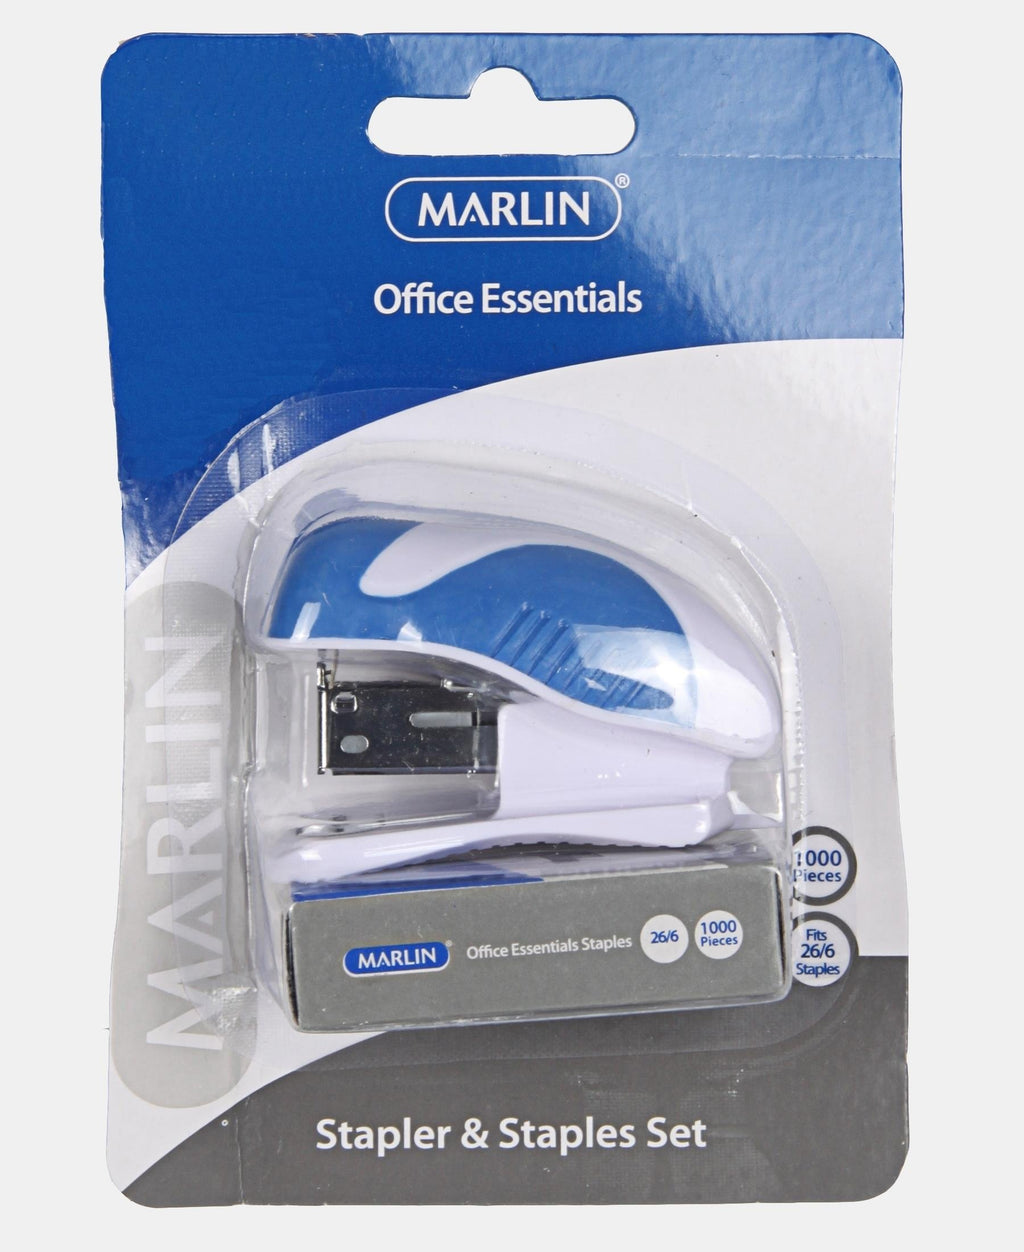 Marlin Mini Stapler And Staples Set - Blue